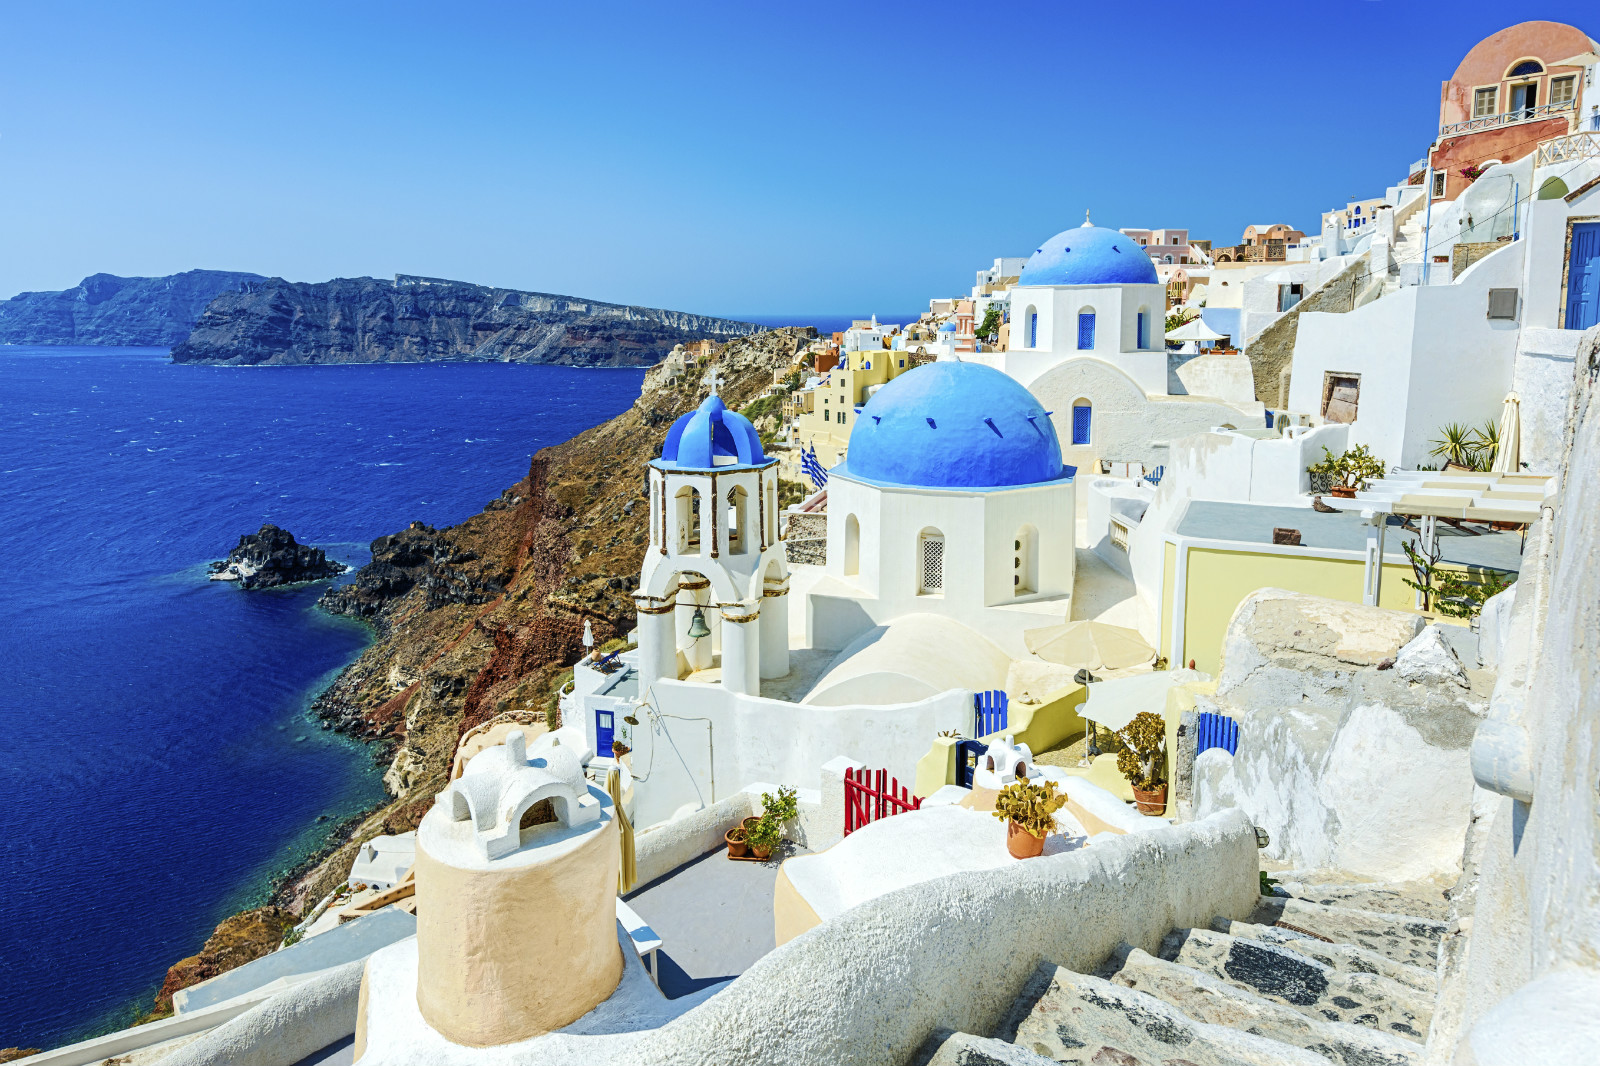 QATAR AIRWAYS ANNOUNCES NEW SEASONAL FLIGHTS TO SANTORINI AND DUBROVNIK IN 2020 news cover image